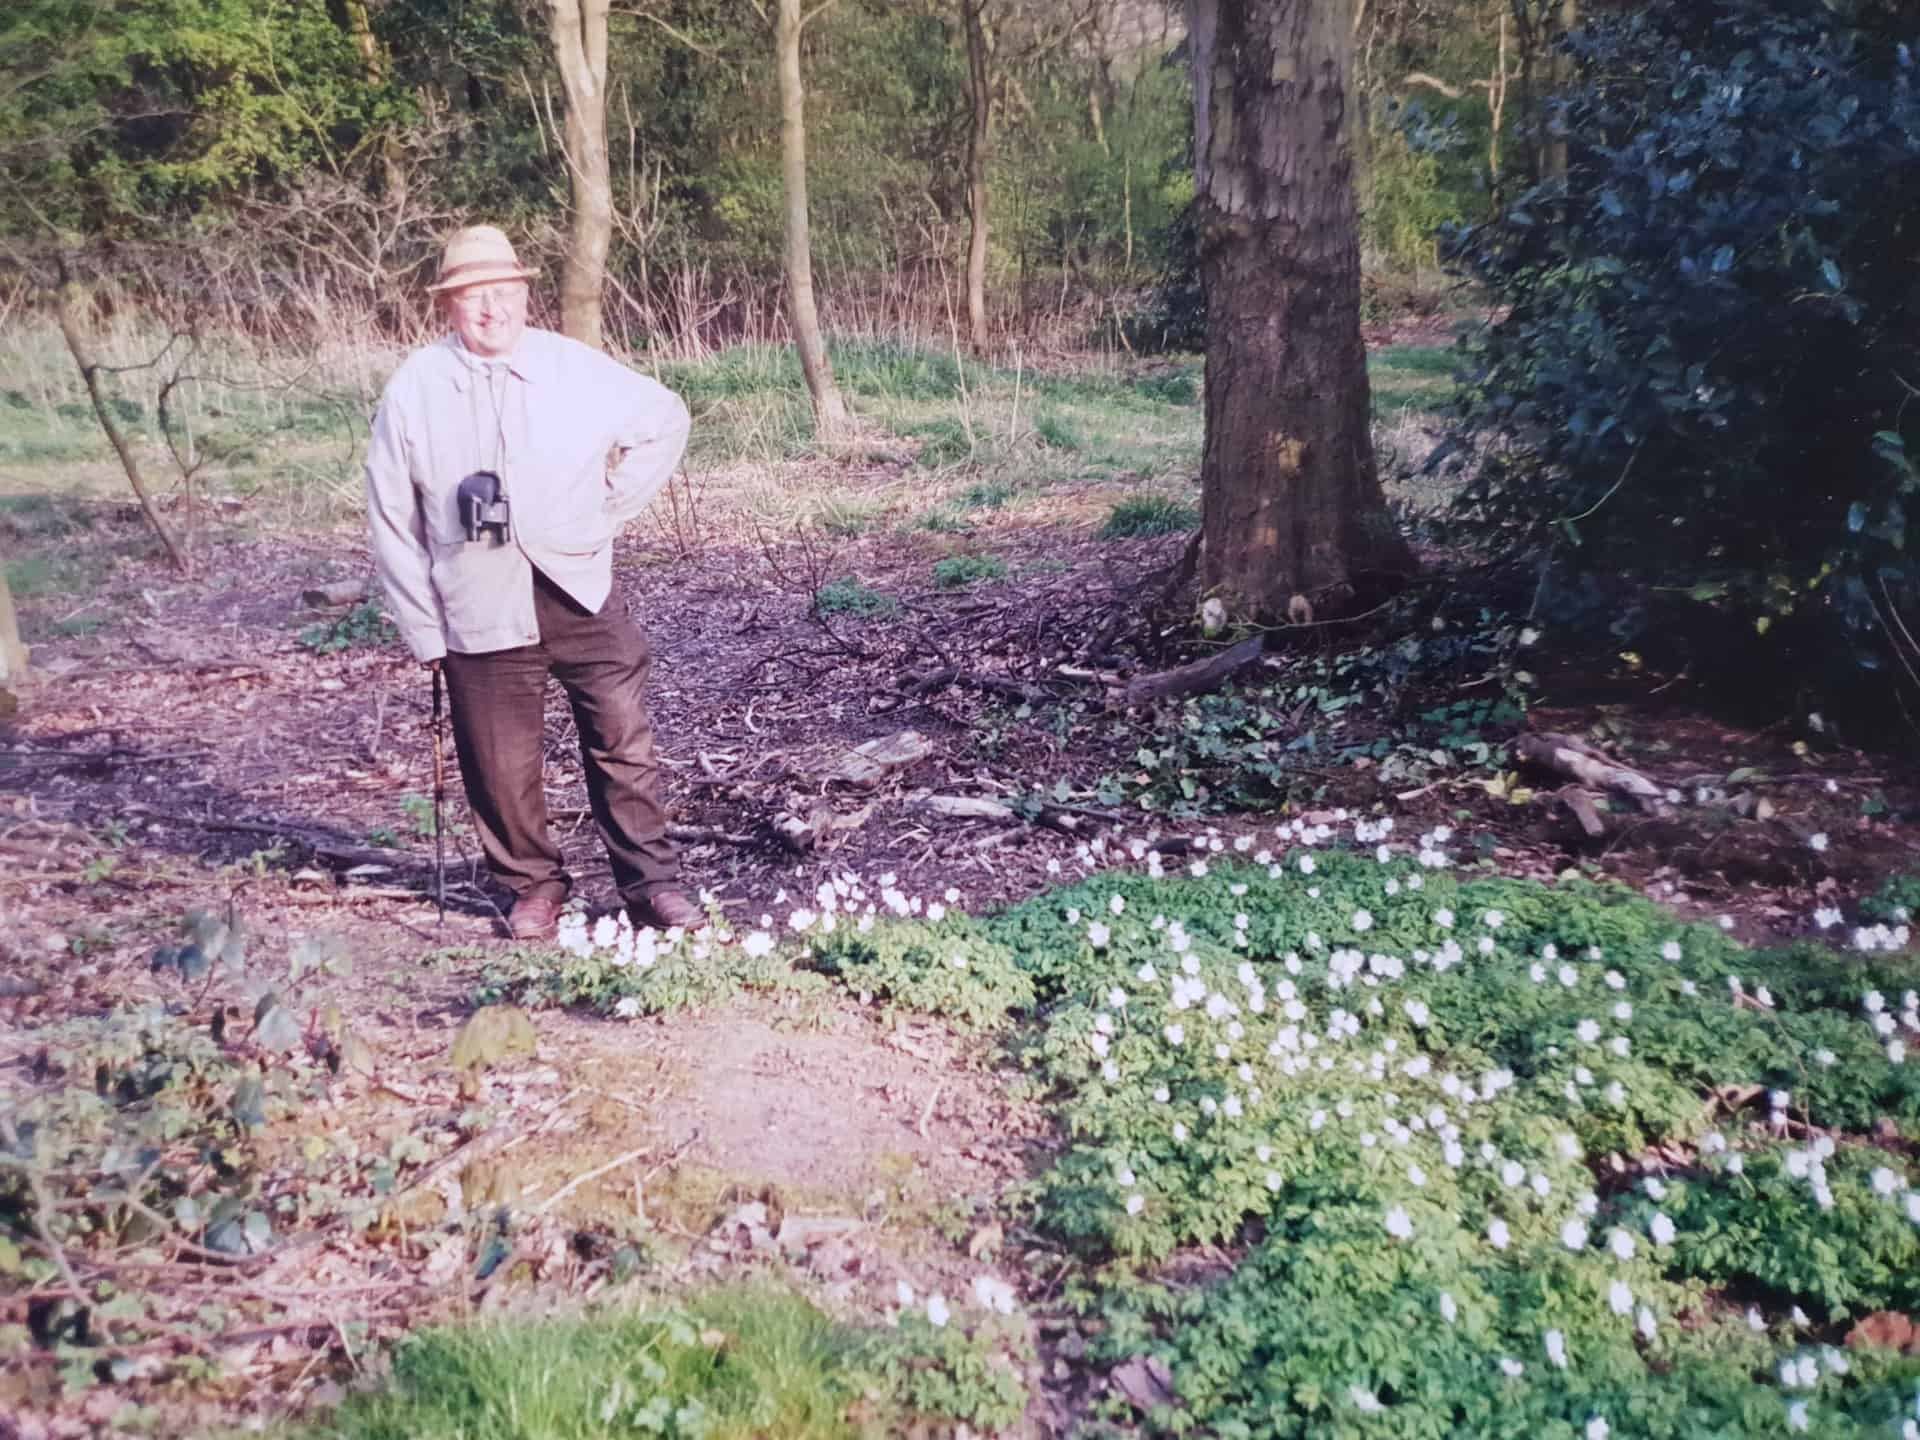 John Shrimpton, stood in the Sandwell Valley Park, 1990s